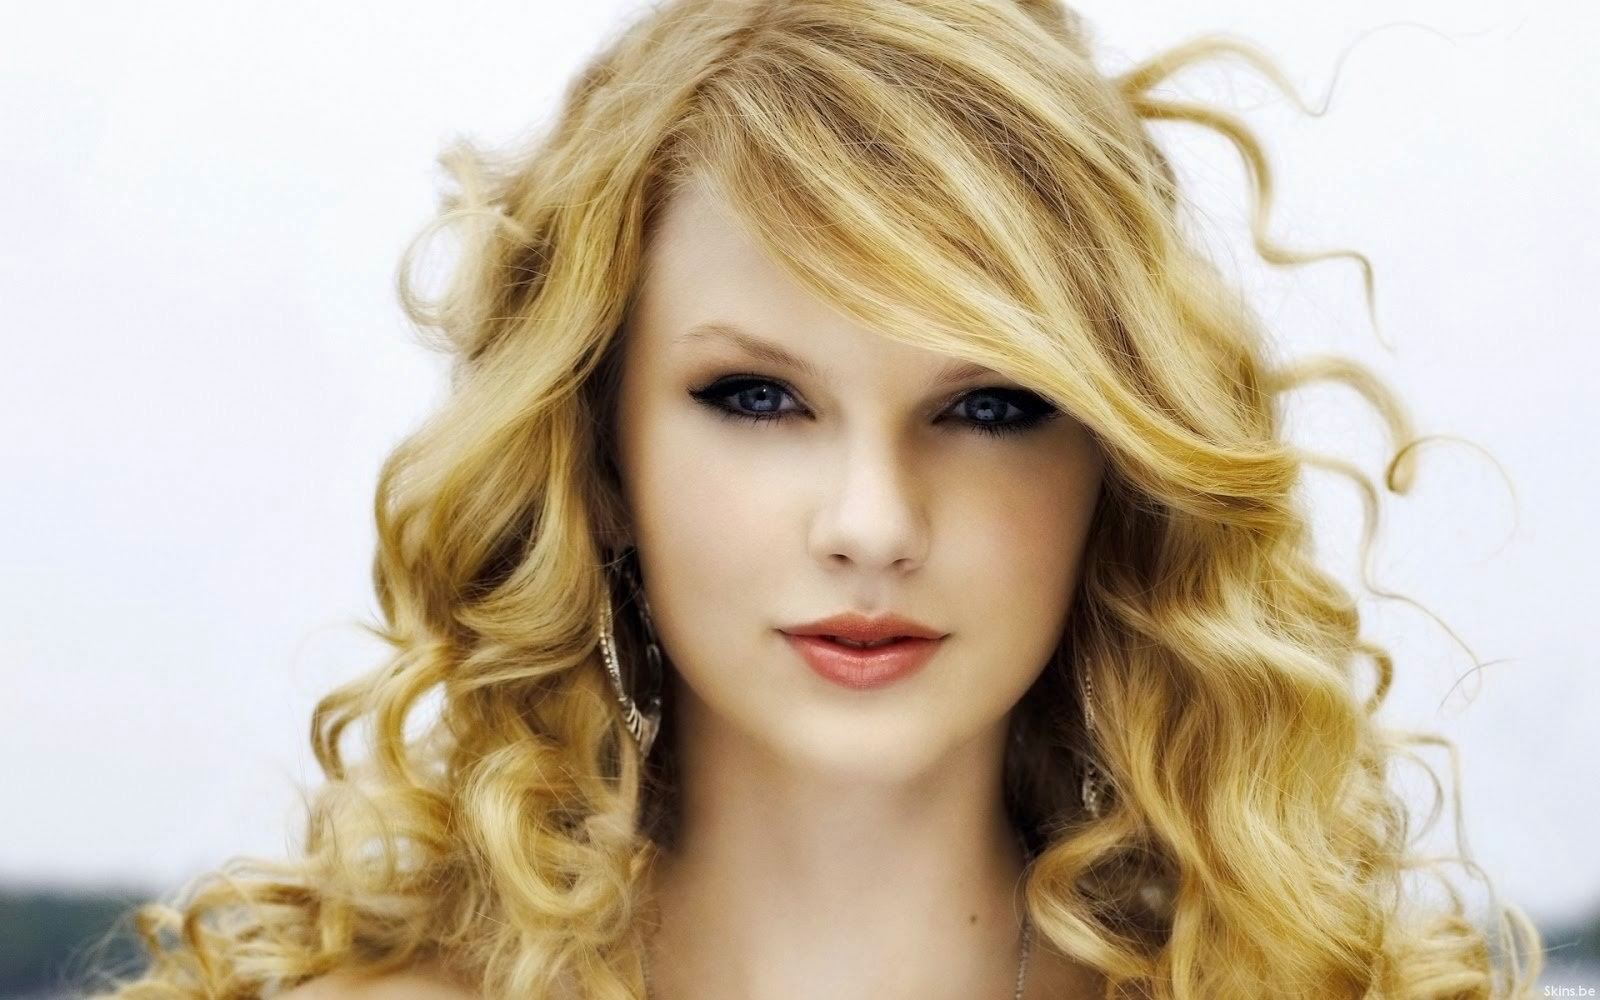 Taylor Swift Named 2014 Billboard Woman of the Year